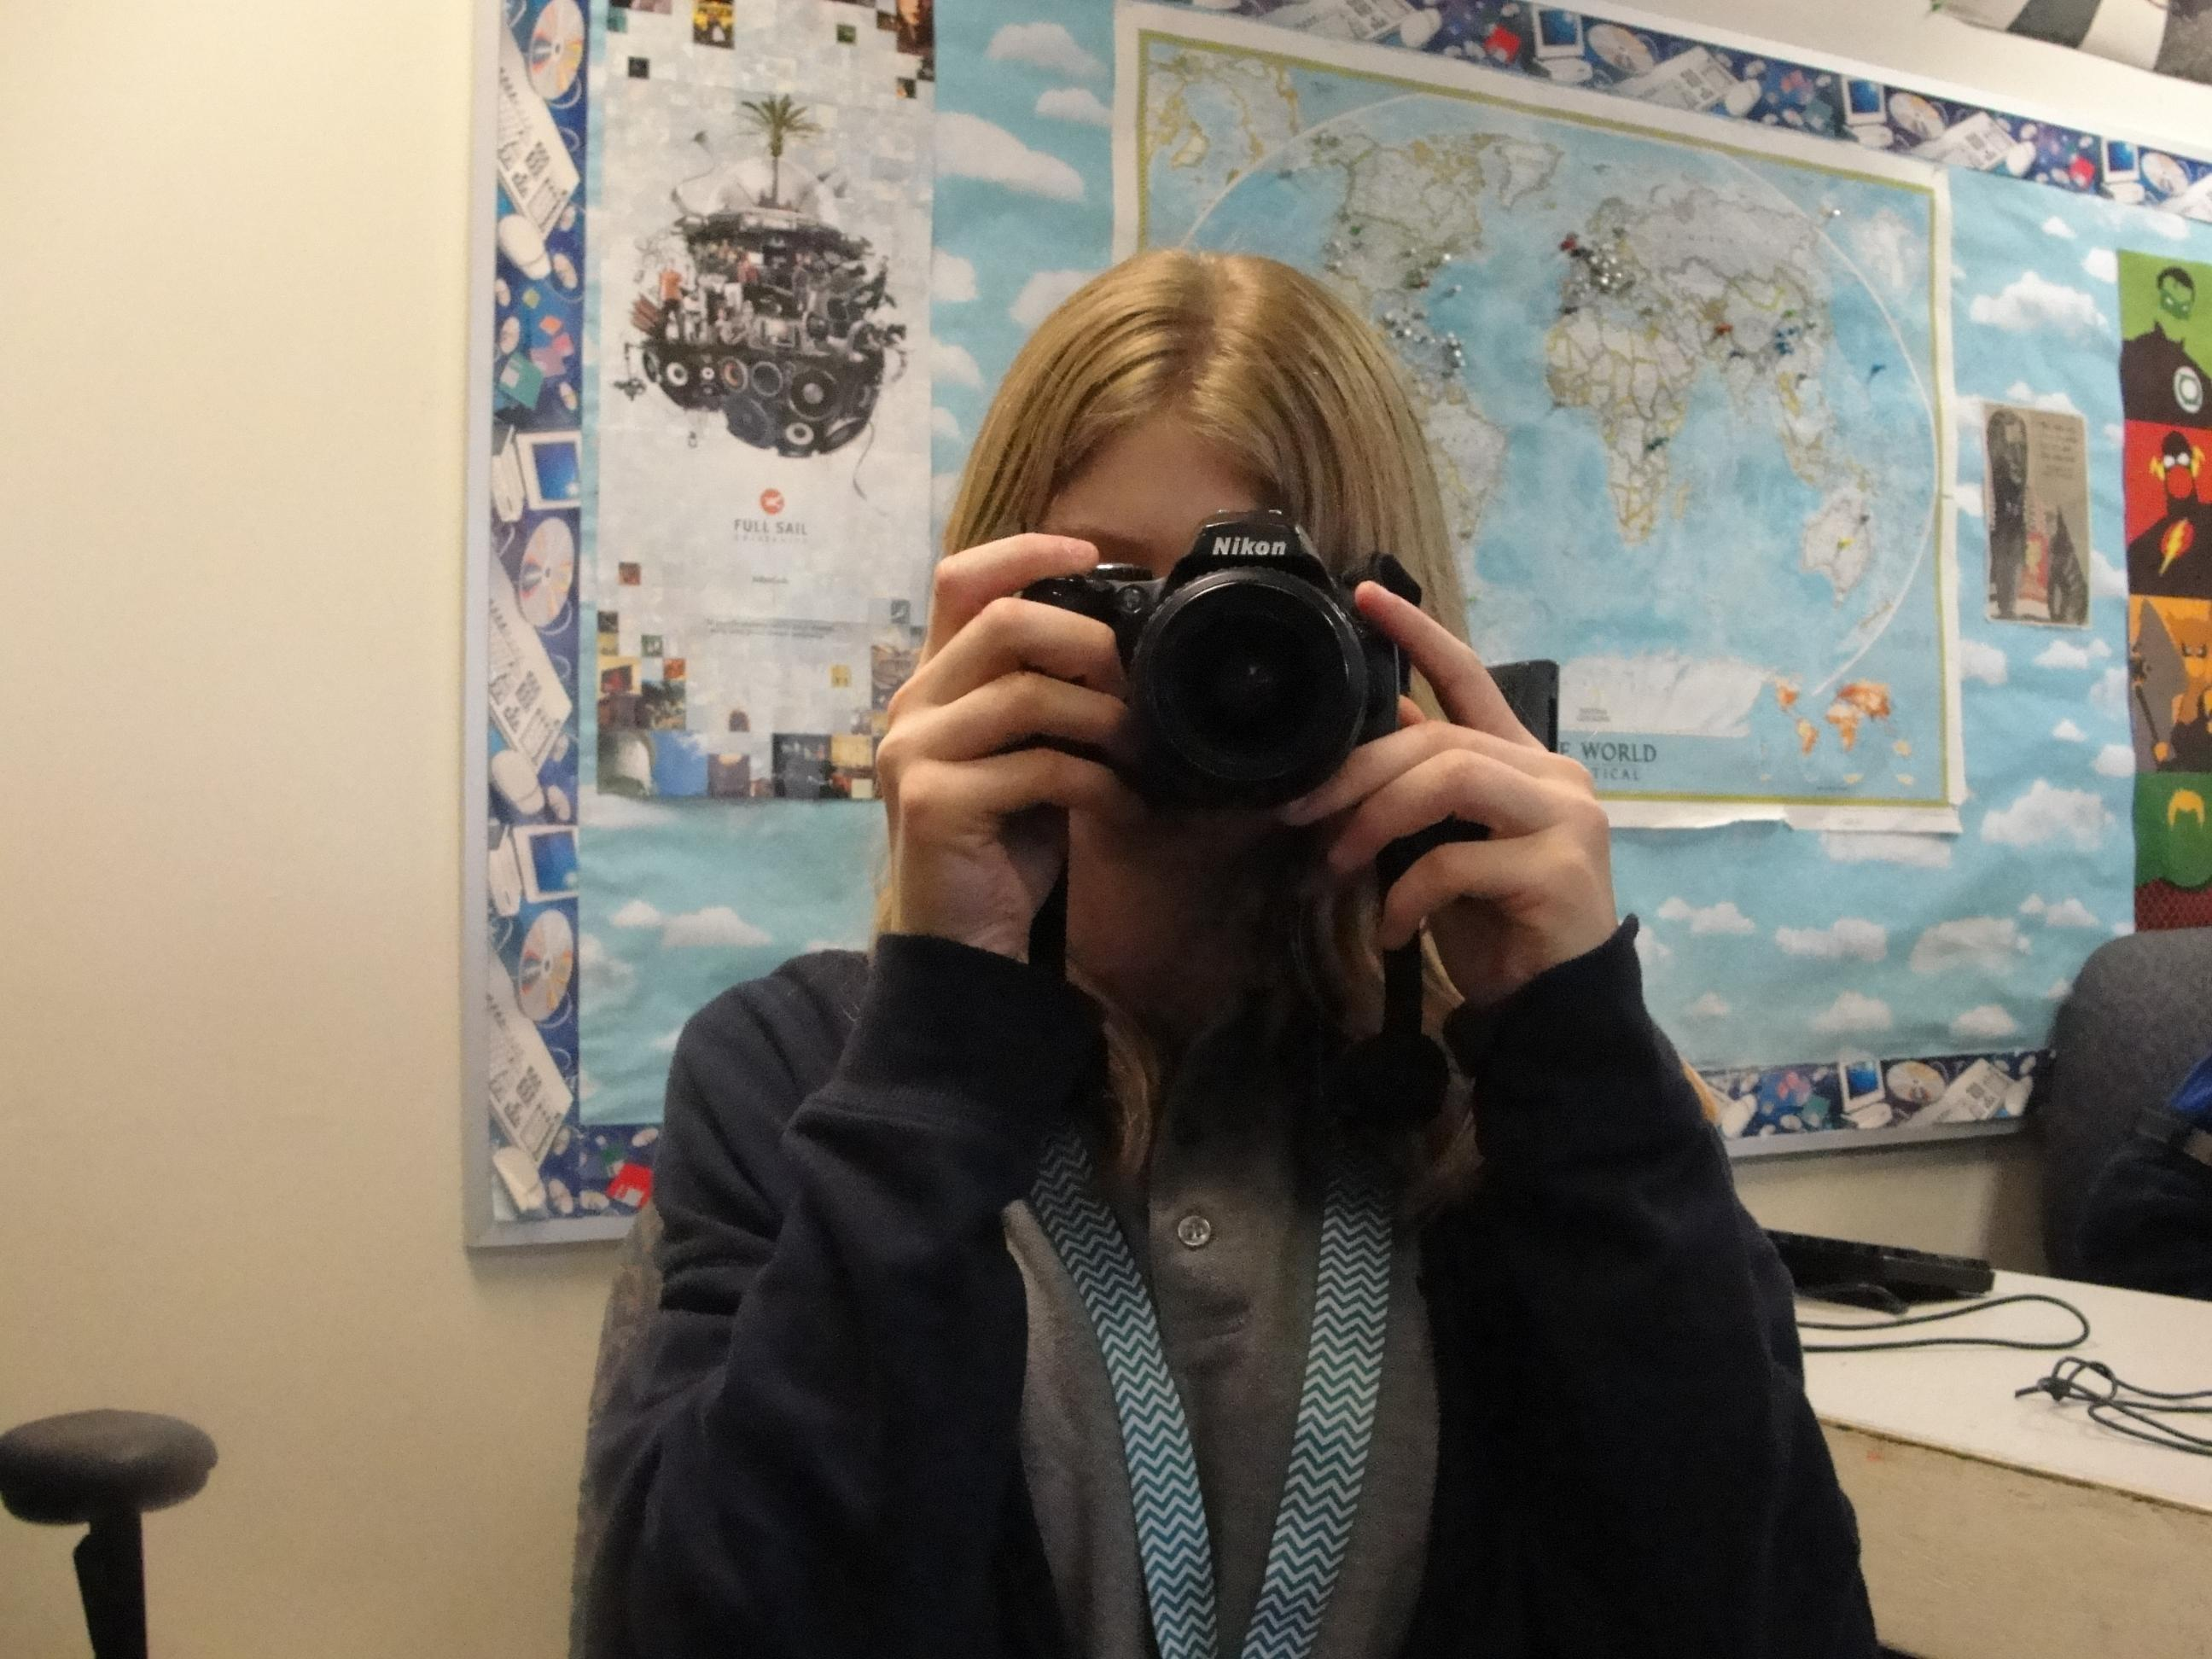 Female Student with Camera